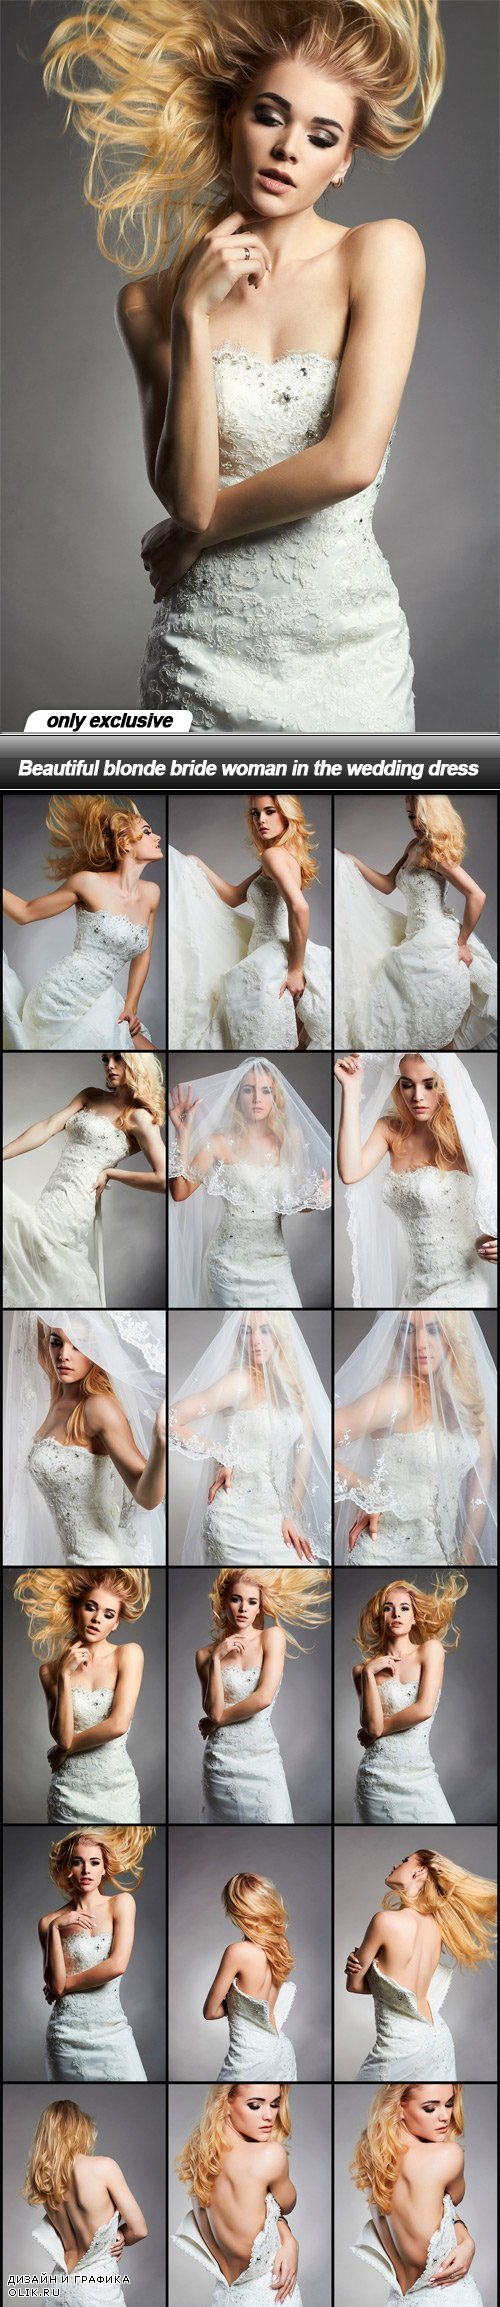 Beautiful blonde bride woman in the wedding dress - 18 UHQ JPEG